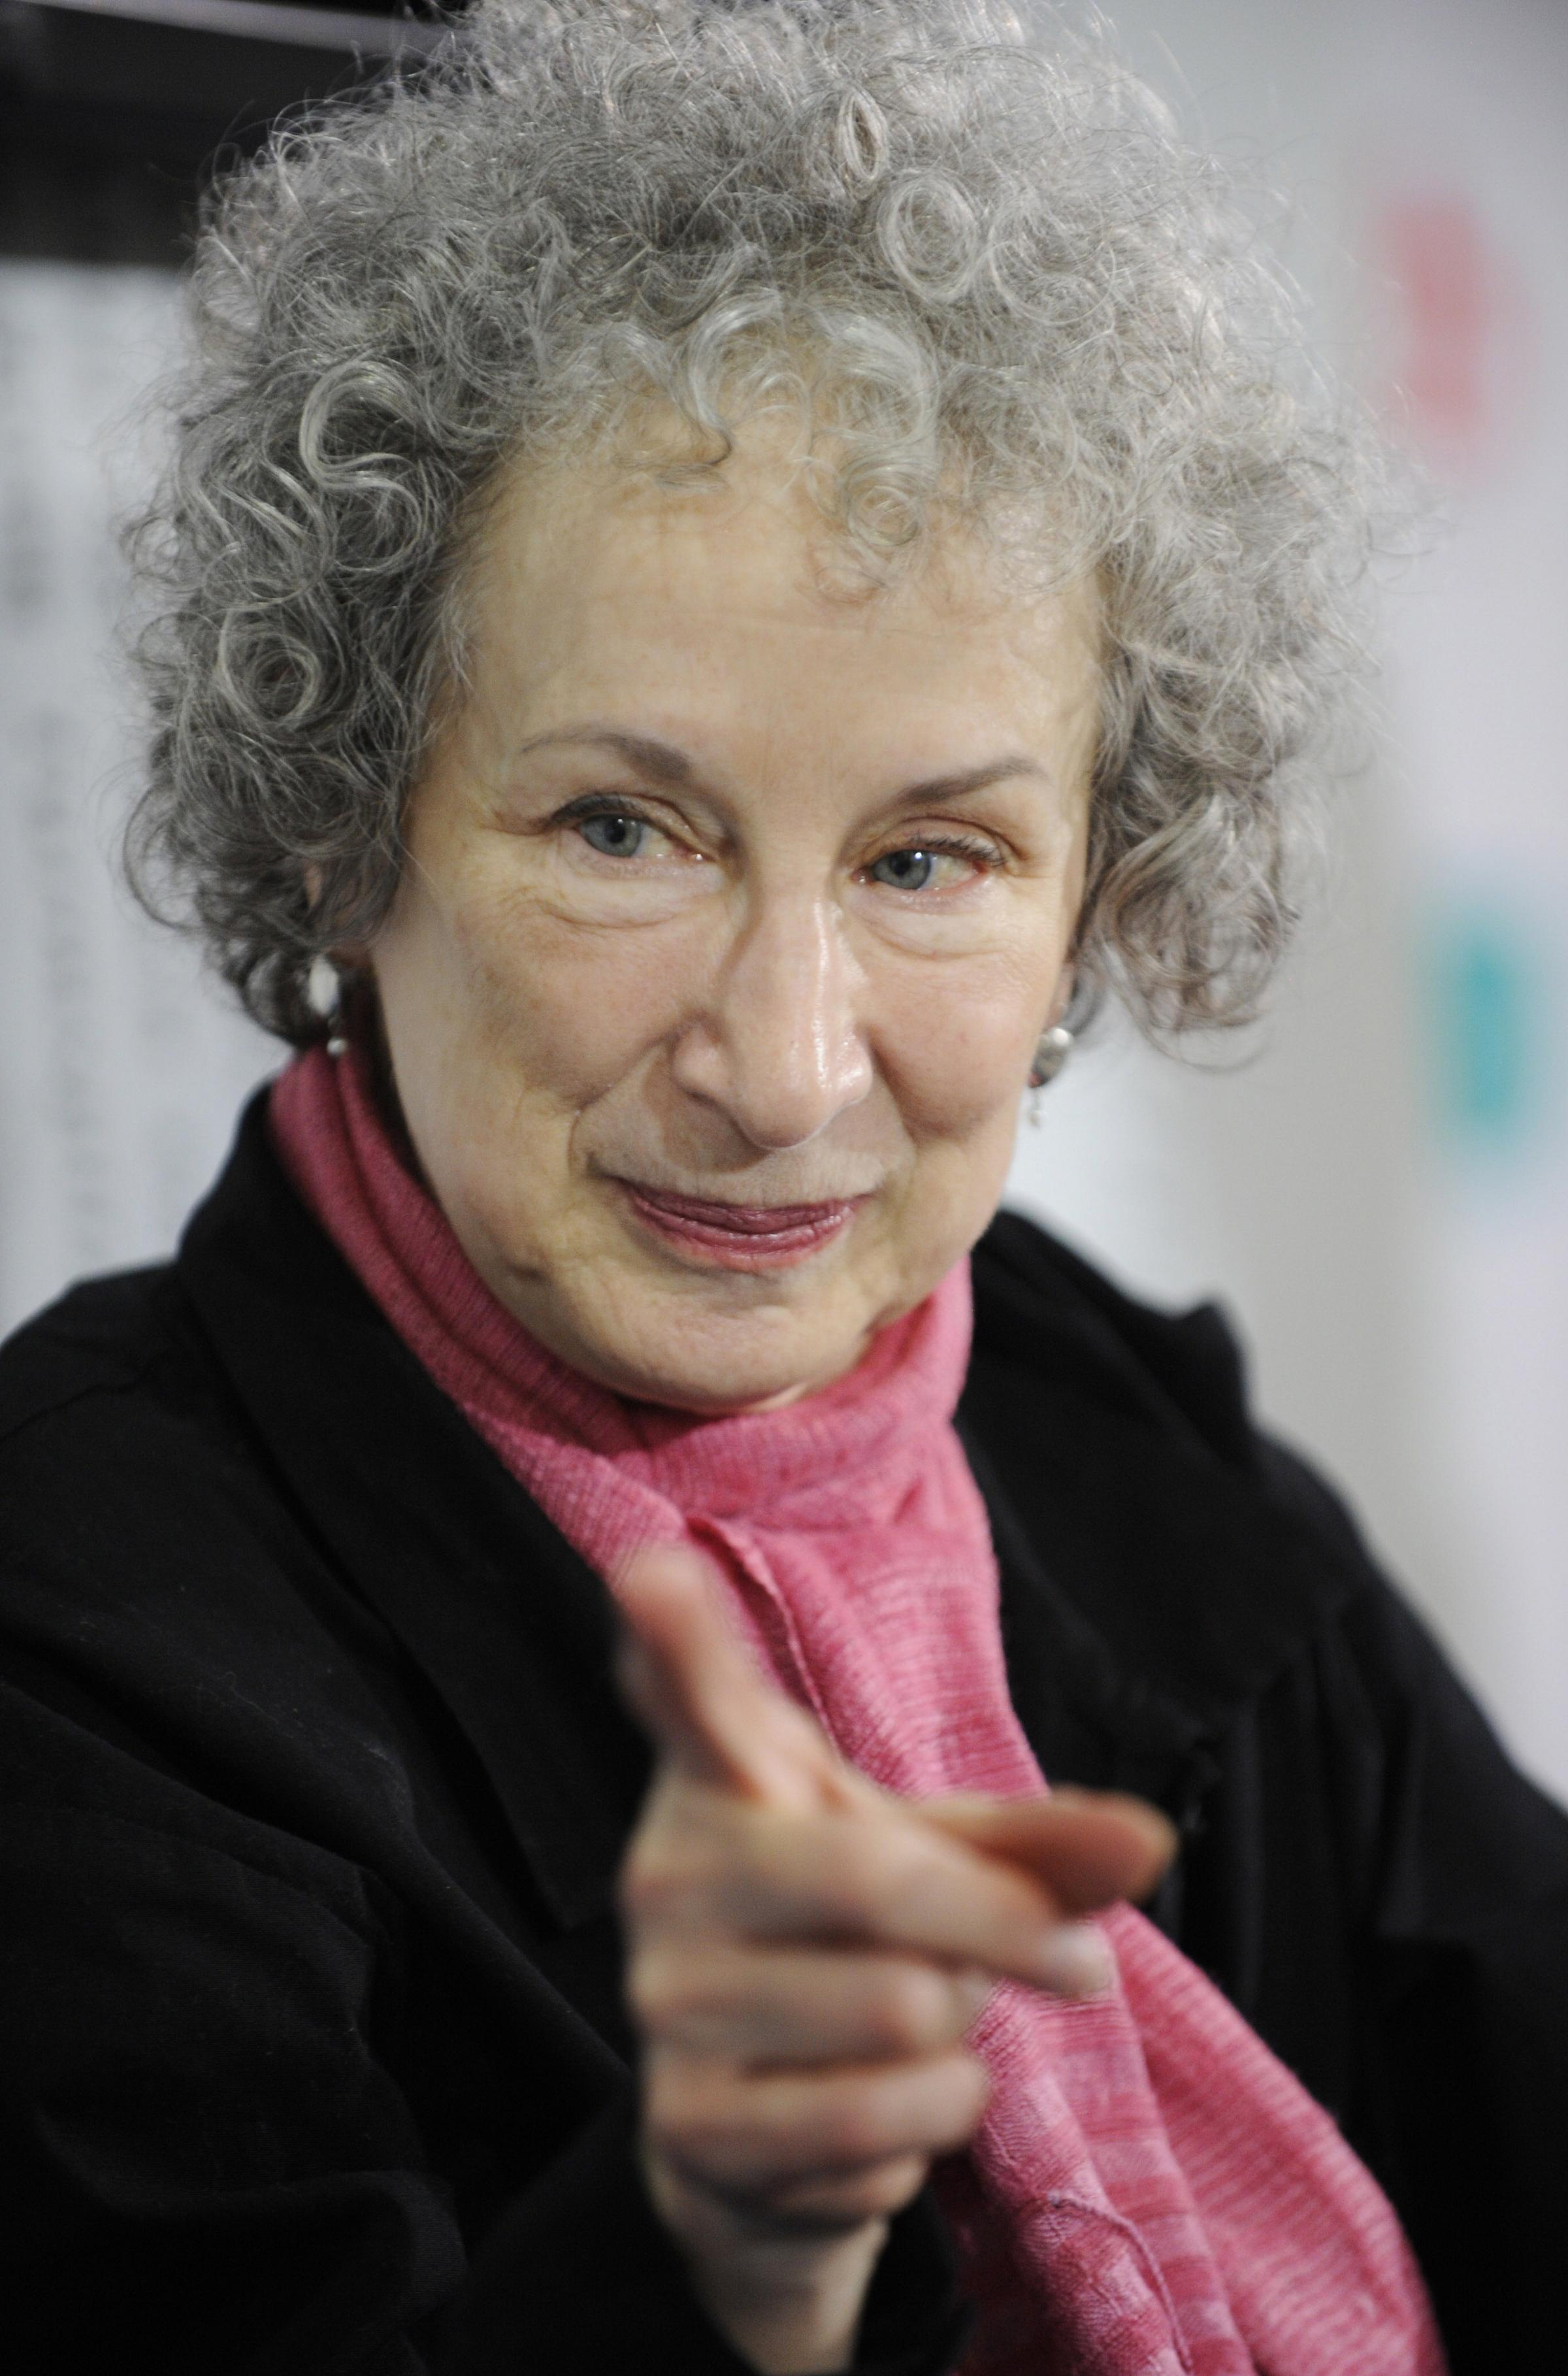 an analysis of the writing style of margaret atwood a canadian author Everything you need to know about the writing style of margaret atwood's the handmaid's tale, written by experts with you in mind writing style analysis.